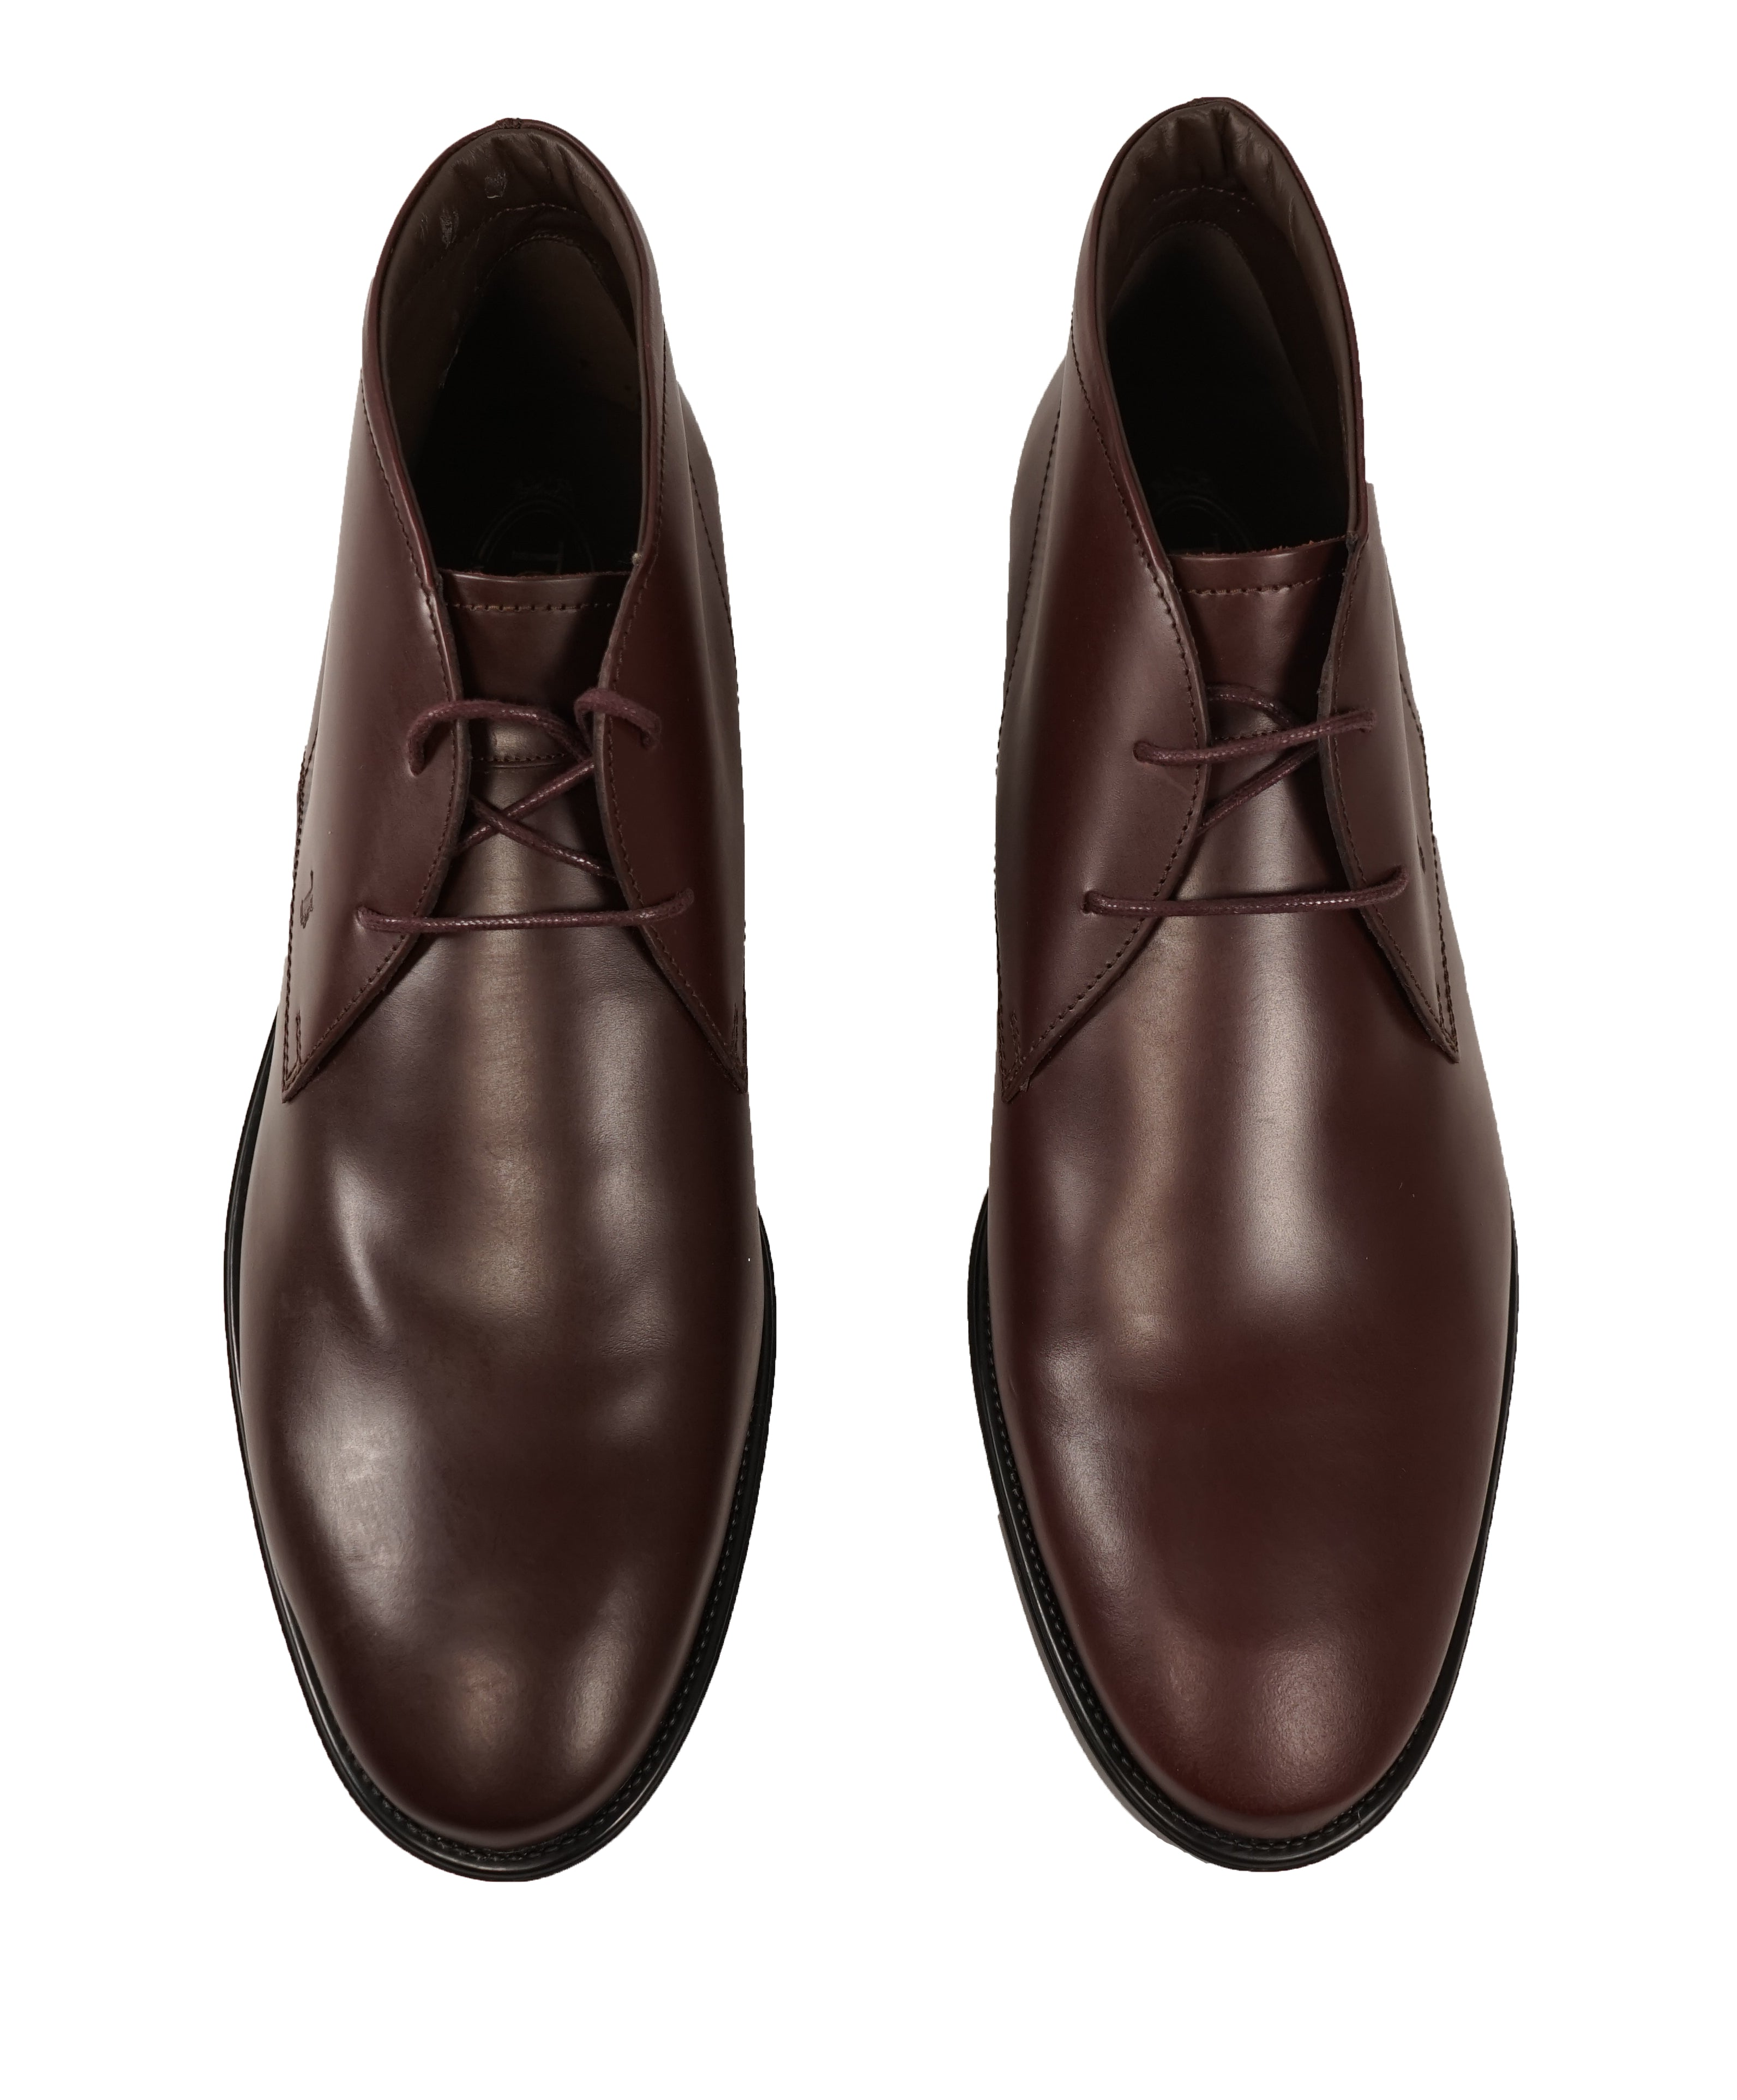 TOD'S - Brown Oxblood Rubber Sole Logo Chukka Boot - 12.5